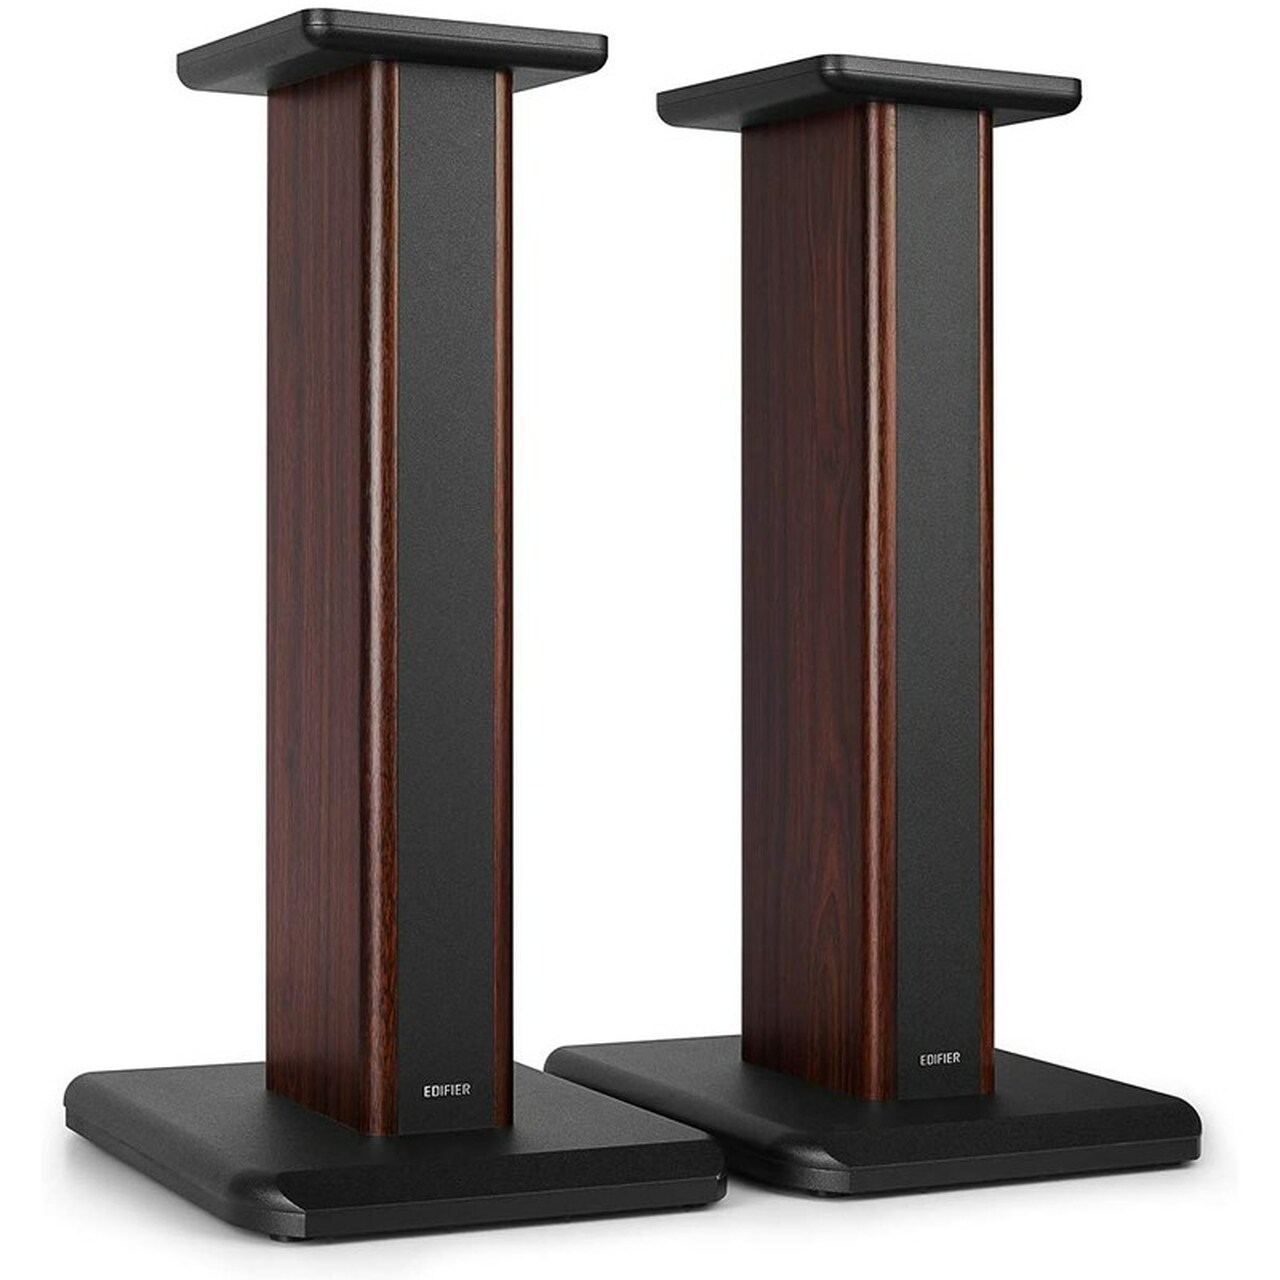 Edifier SS03 Stand - Compatible with S3000PRO/Elevates Speakers/Wood Grain Design/MDF Structure Stability